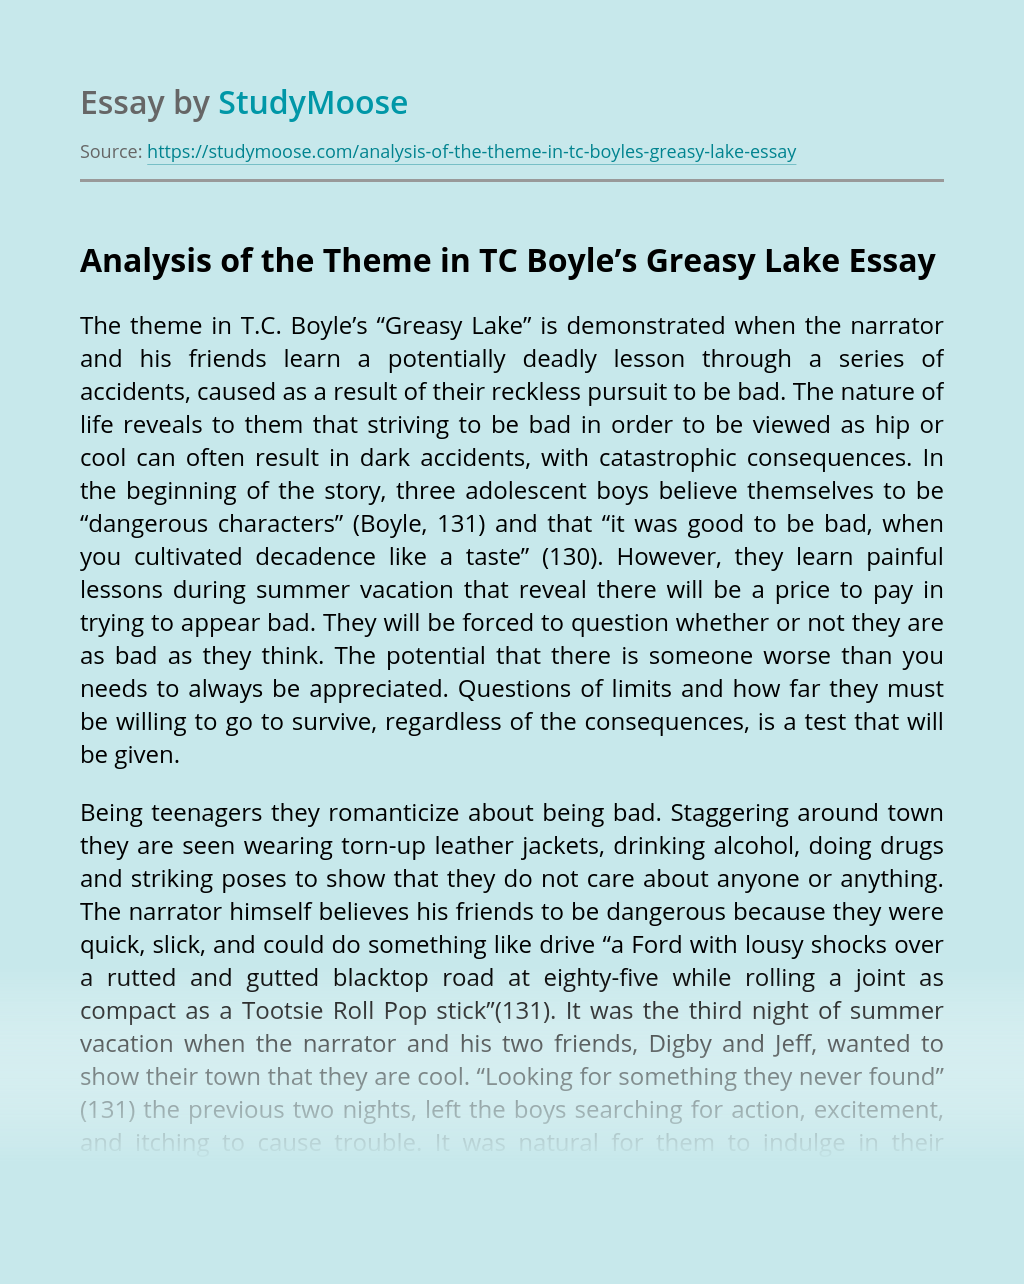 Analysis of the Theme in TC Boyle's Greasy Lake